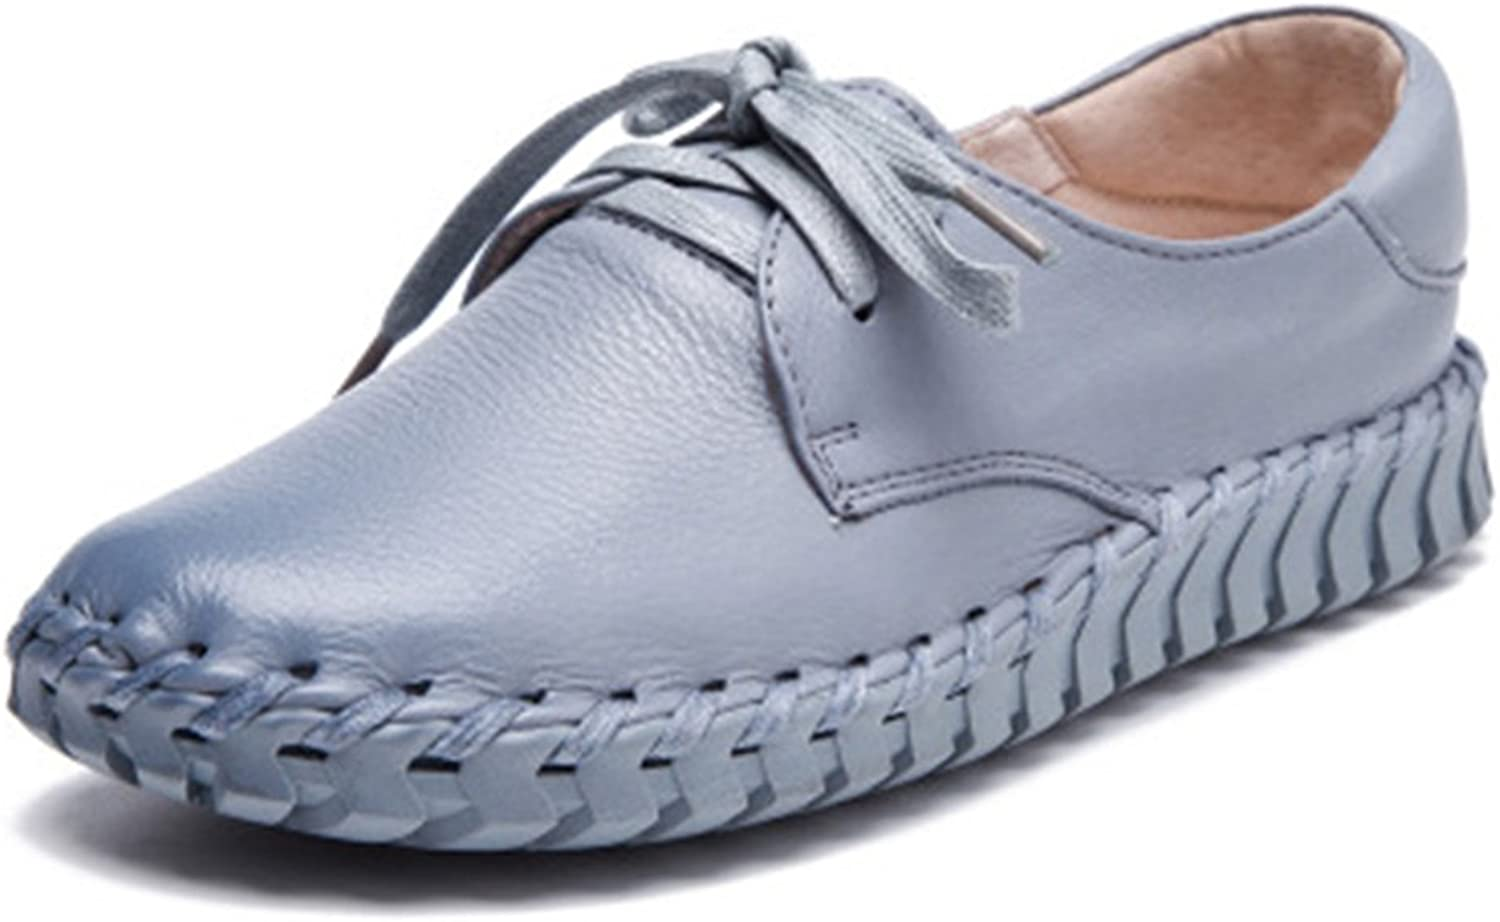 York Zhu Loafers for Women, Casual Slip on Flats Lace Up Moccasin Platform shoes